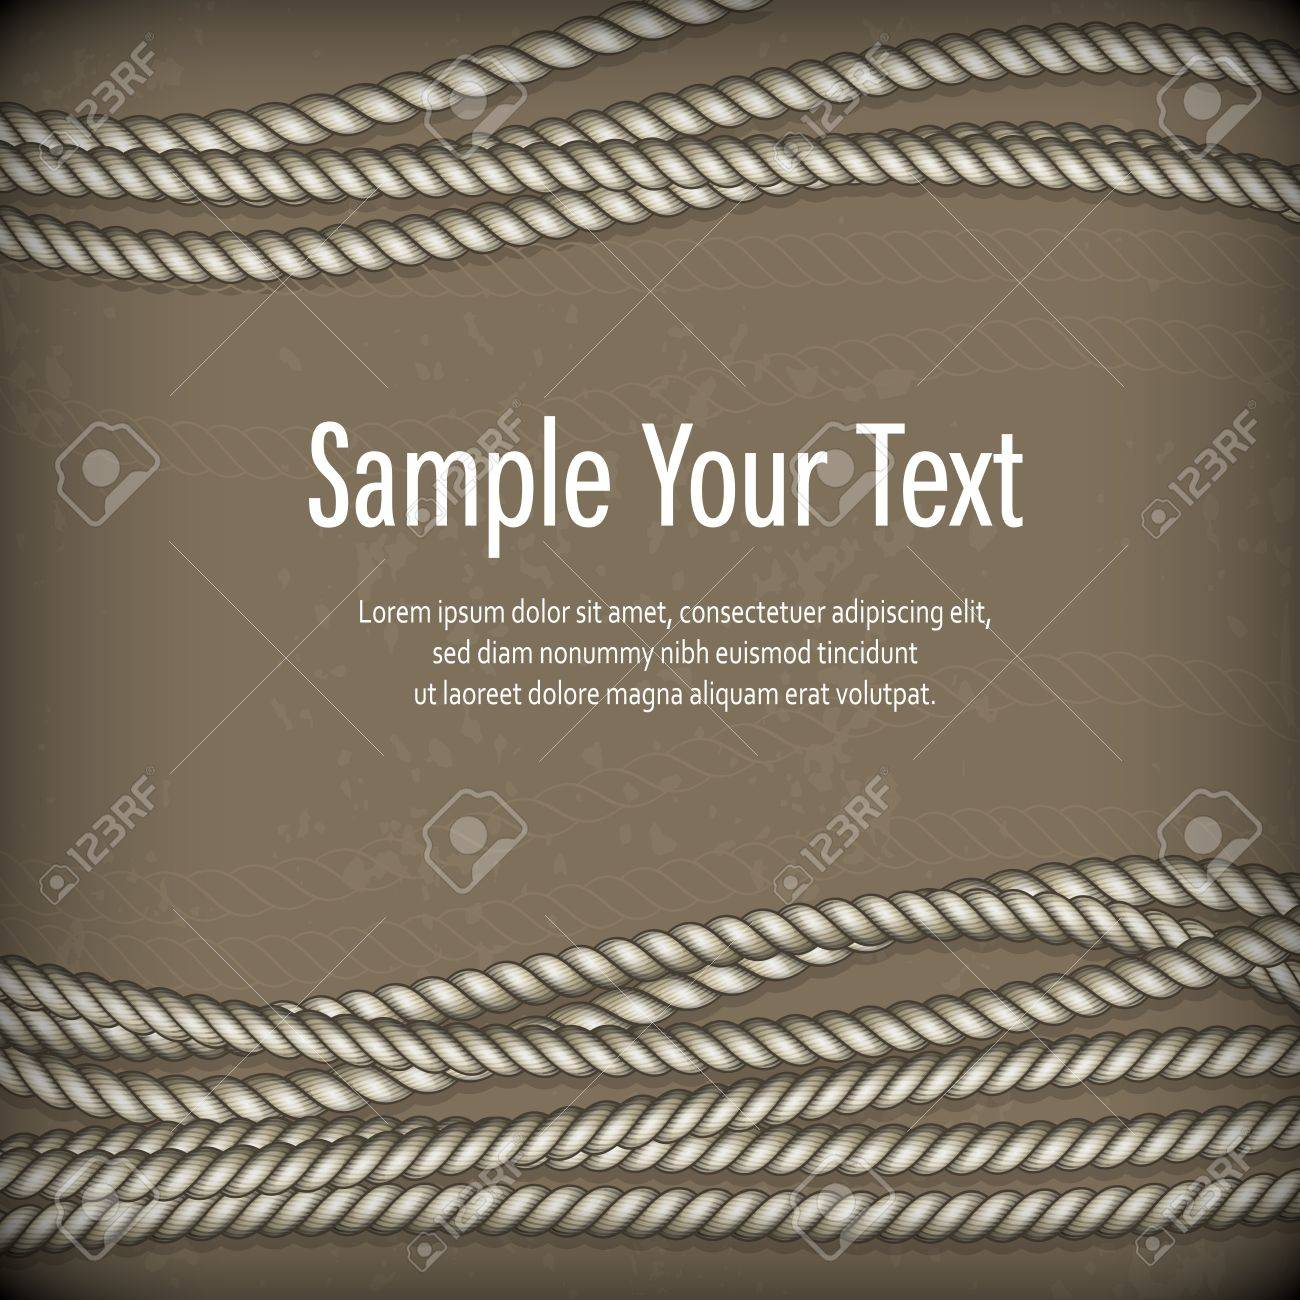 Set of ropes on brown background and text Stock Vector - 20379185